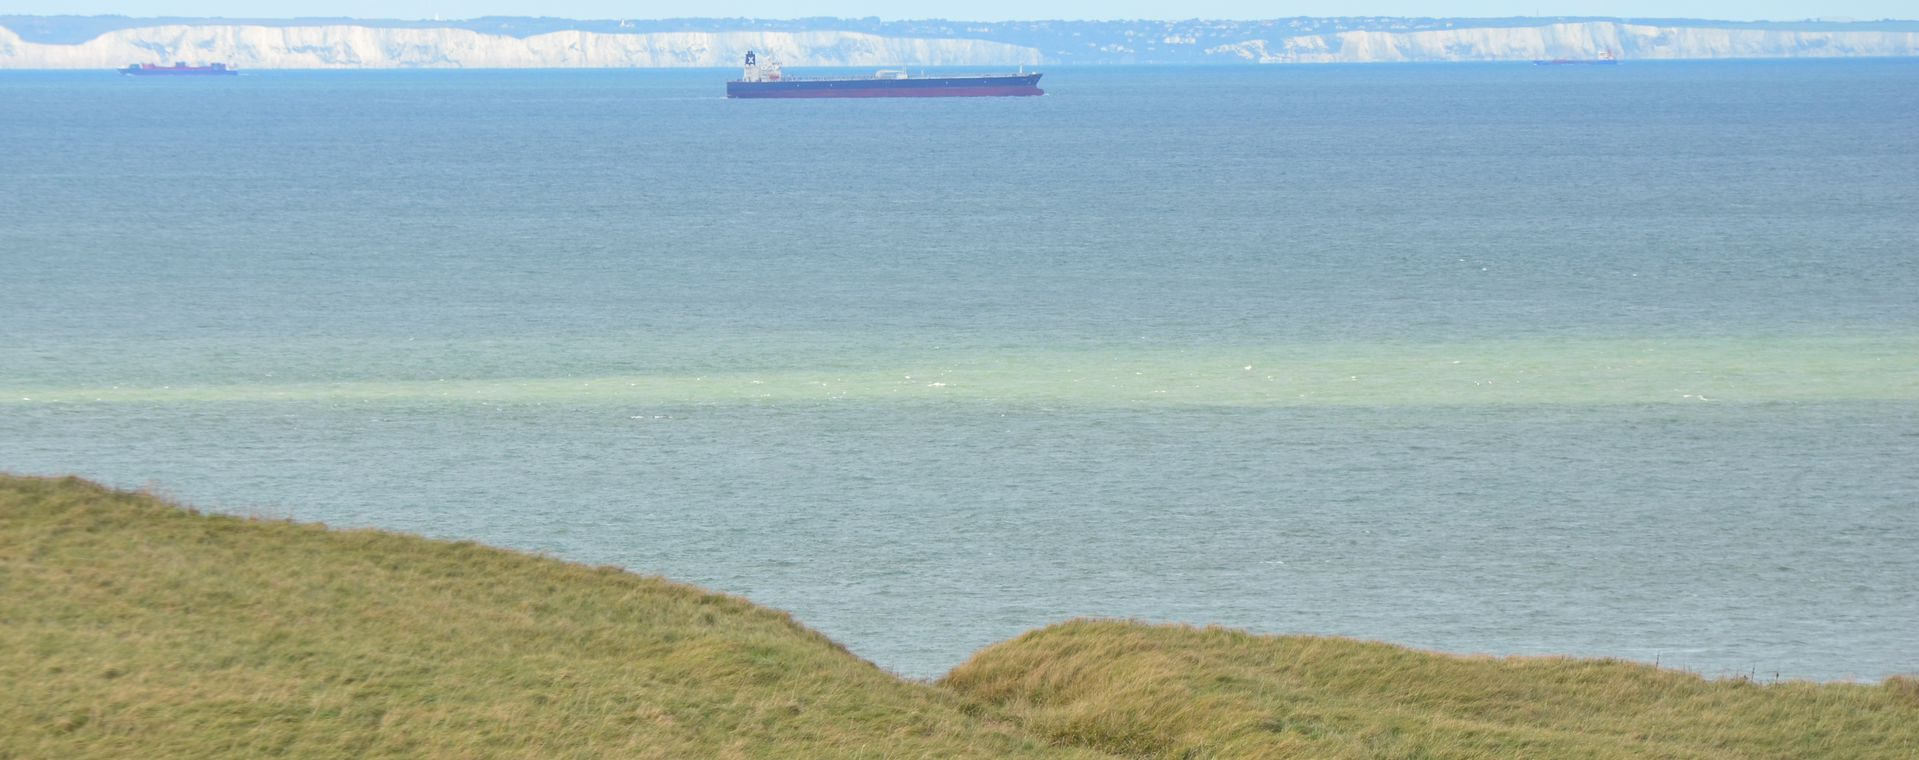 Dover White cliffs seen from Sangatte near Calais